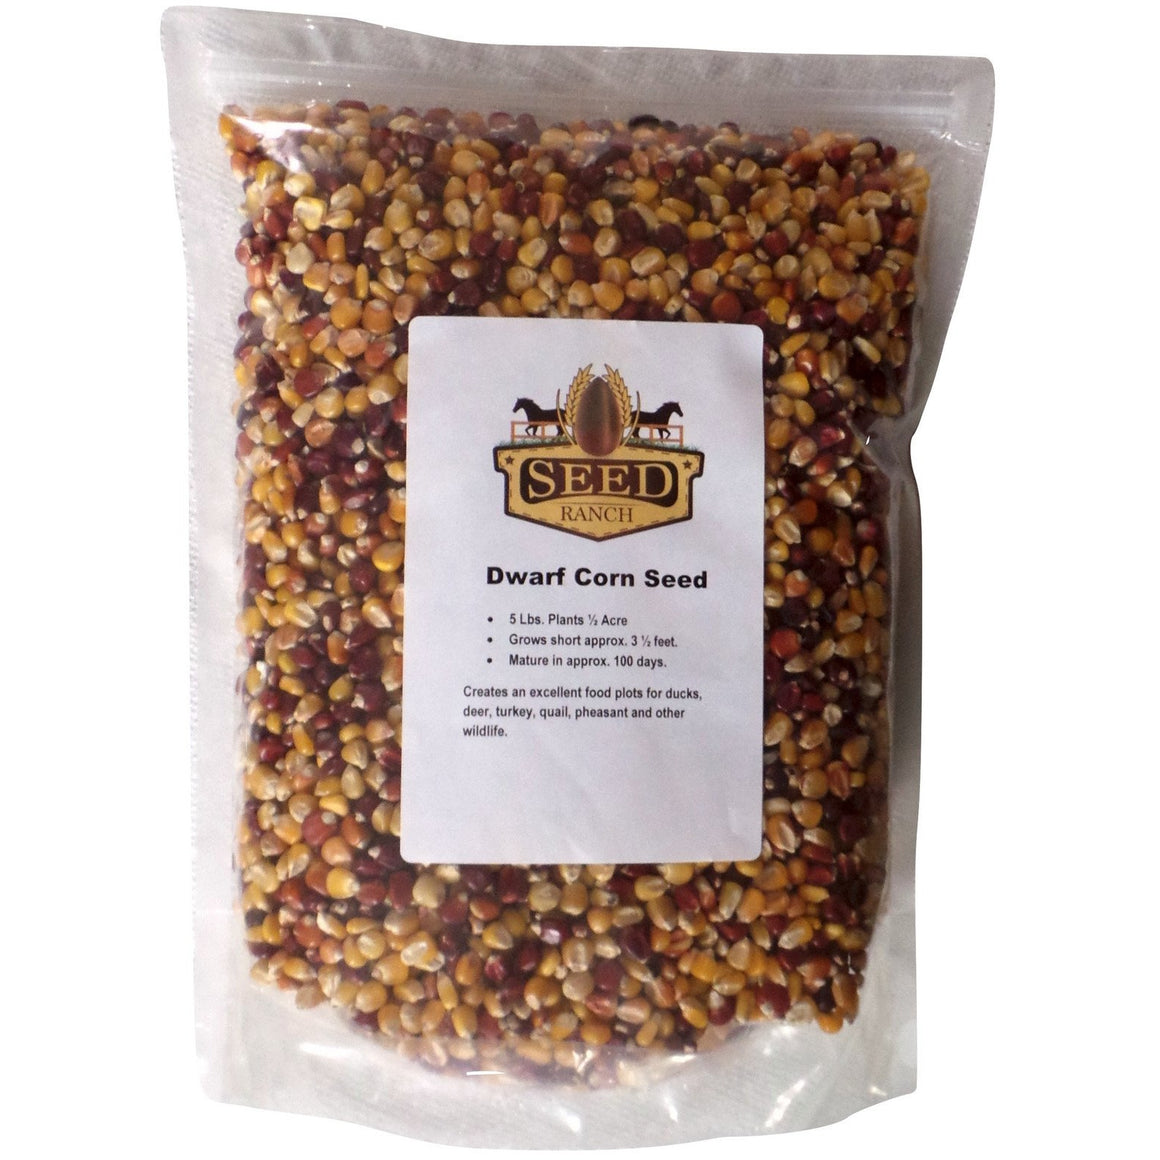 Dwarf Corn Food Plot Seed - 1 Lb.